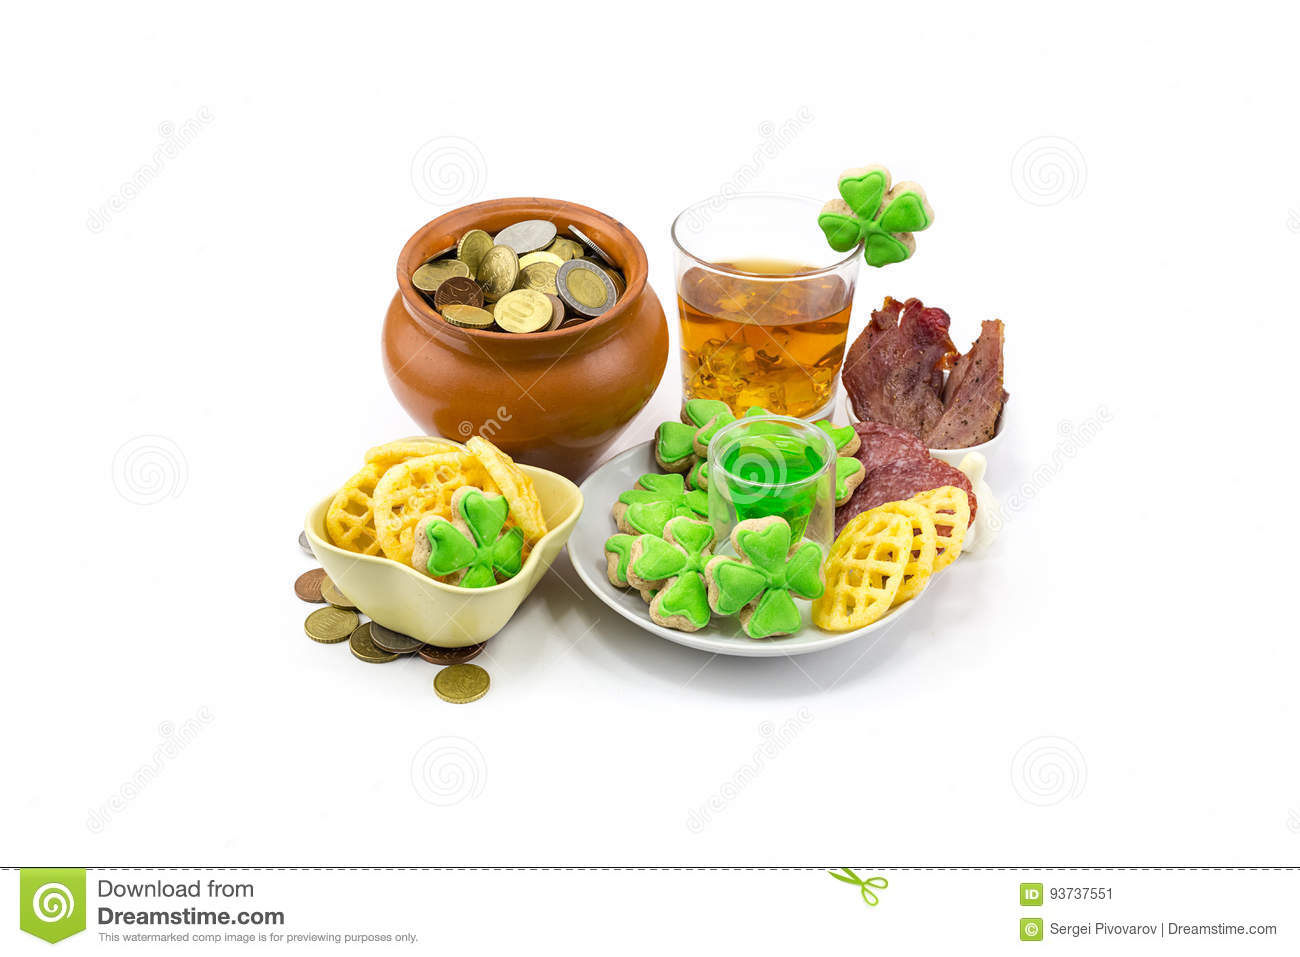 Saint Patrick's Day Scotch whiskey glass ice extraction pot of gold coins and clover snack plate of meat and biscuits